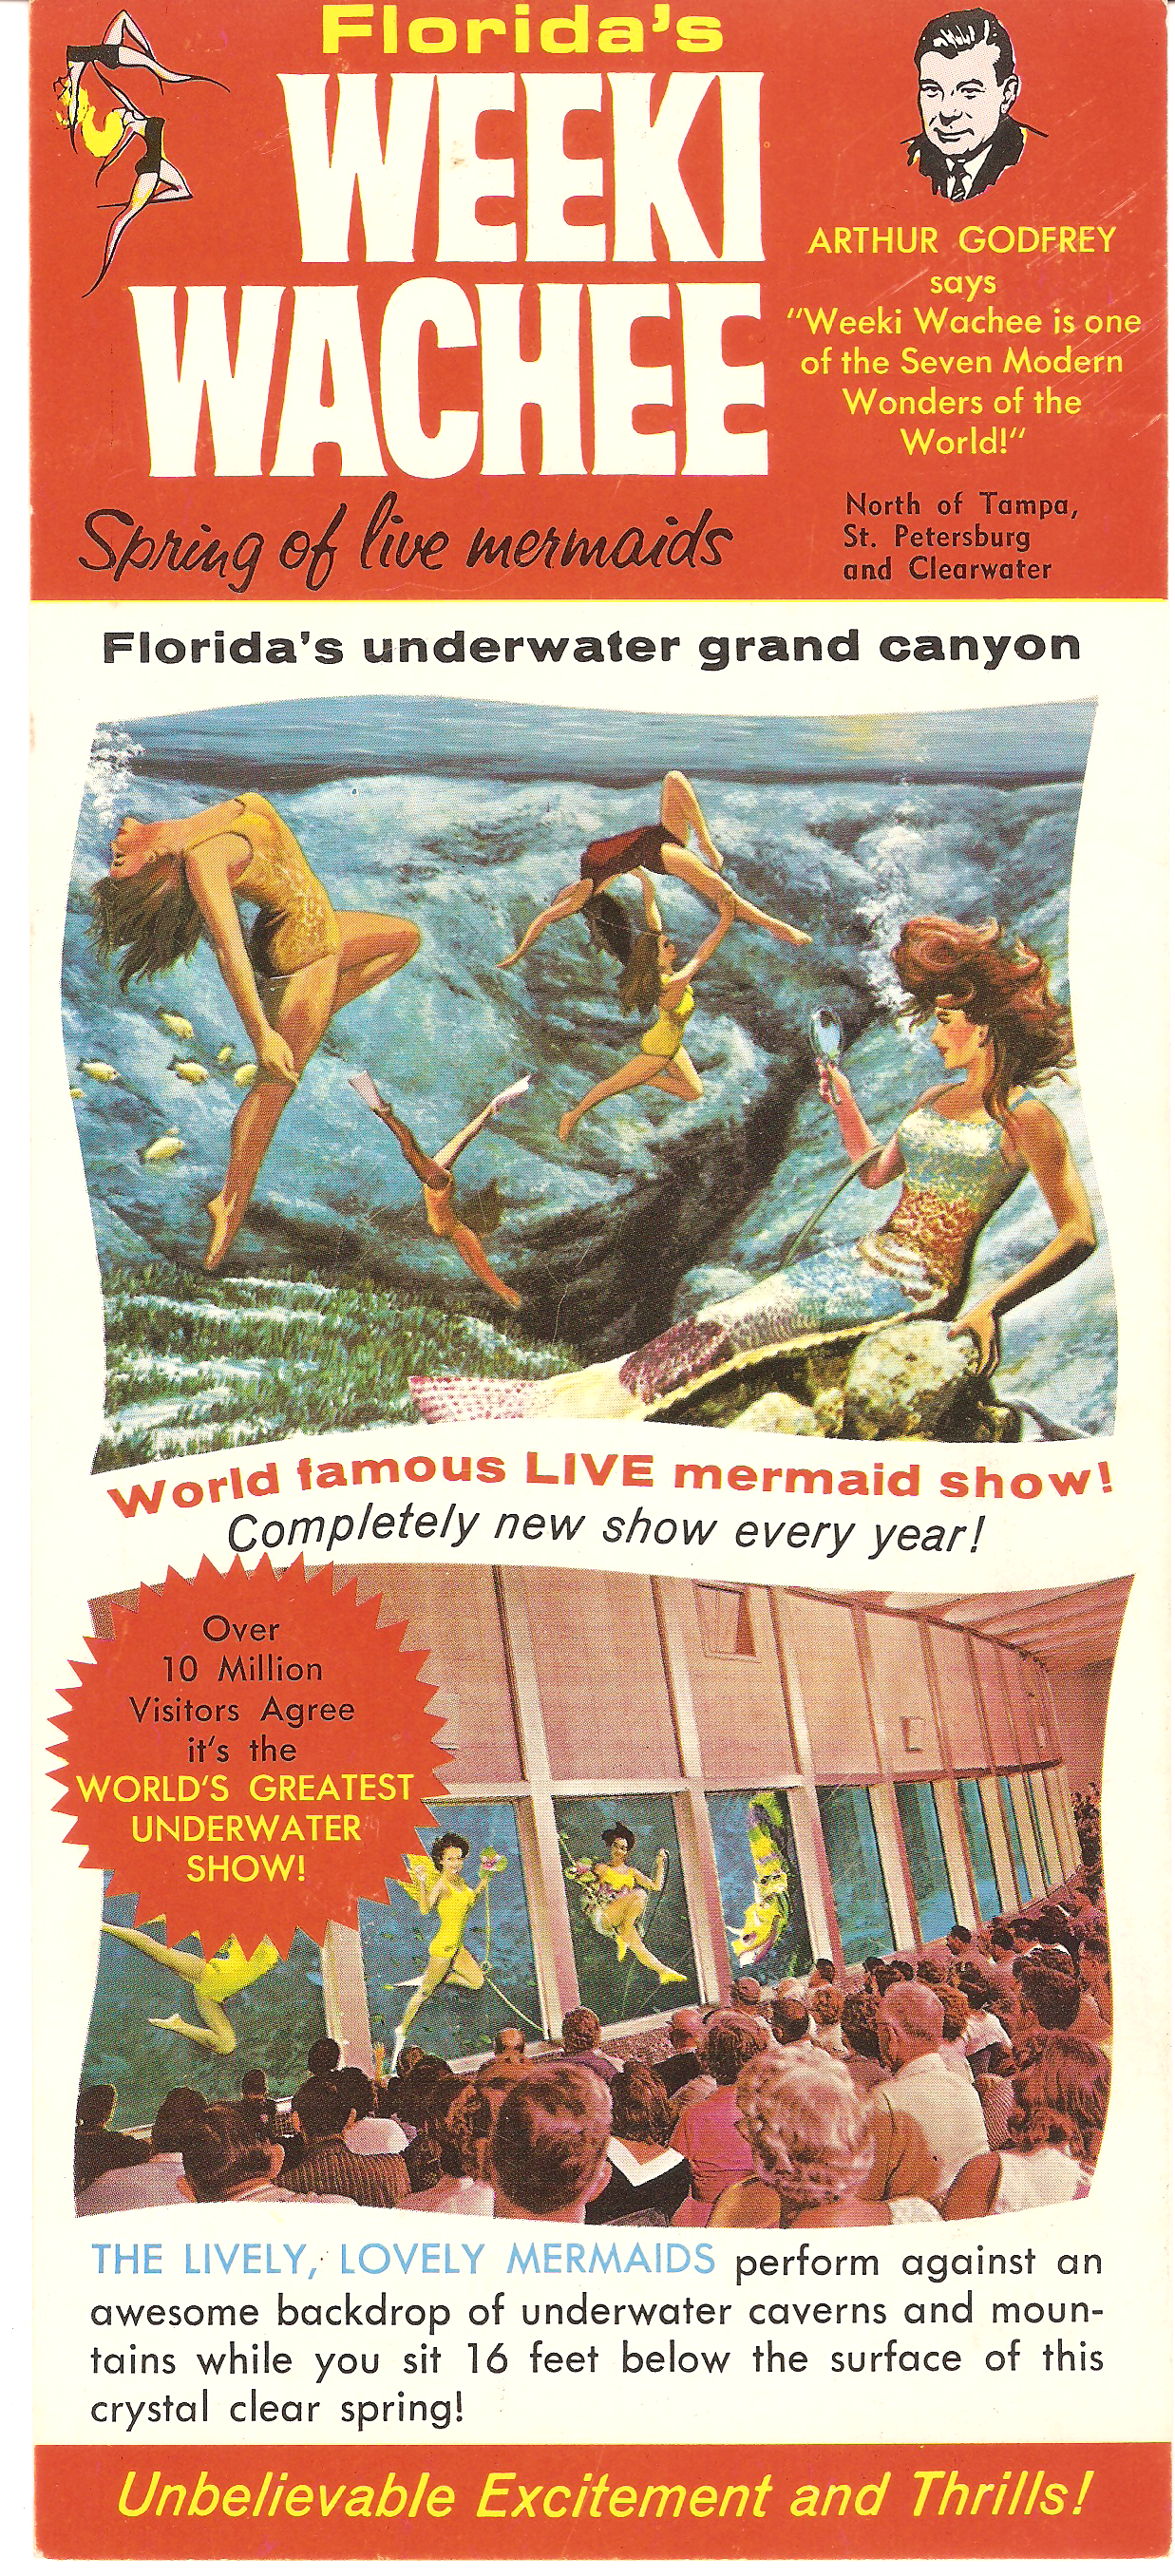 Weeki Wachee mermaid brochure